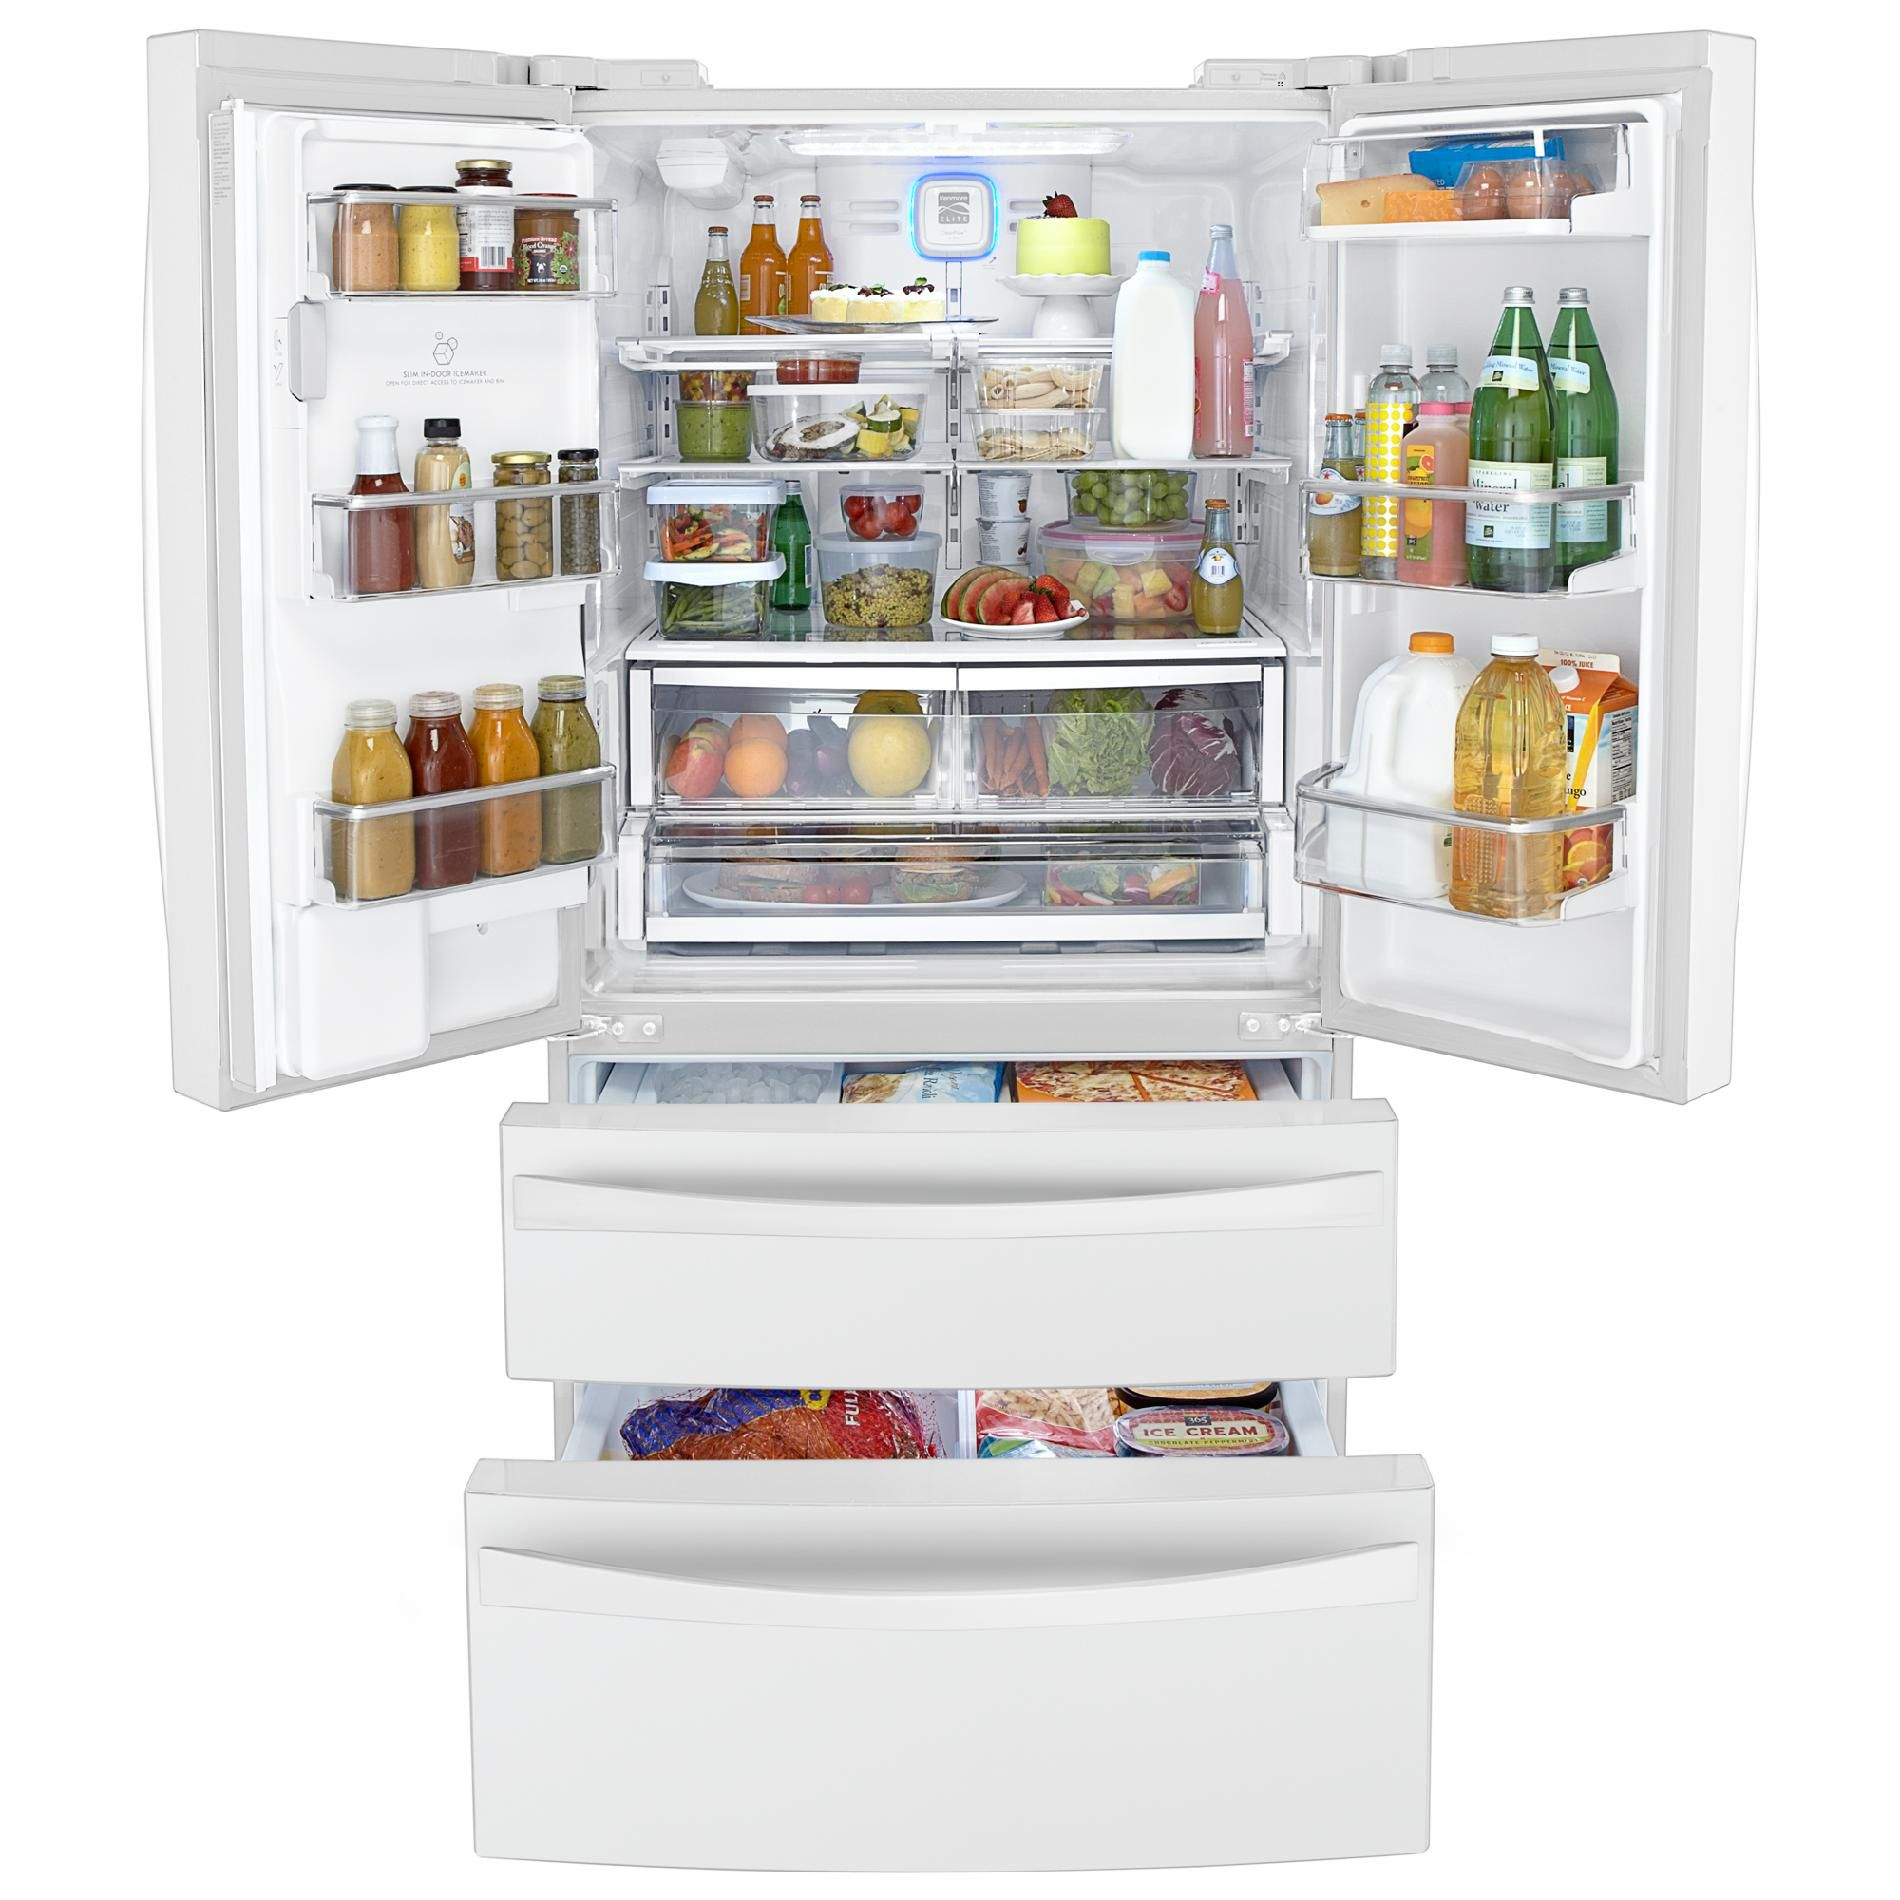 Kenmore Elite 31.0 cu. ft. Dual-Freezer French-Door Bottom-Freezer Refrigerator - White